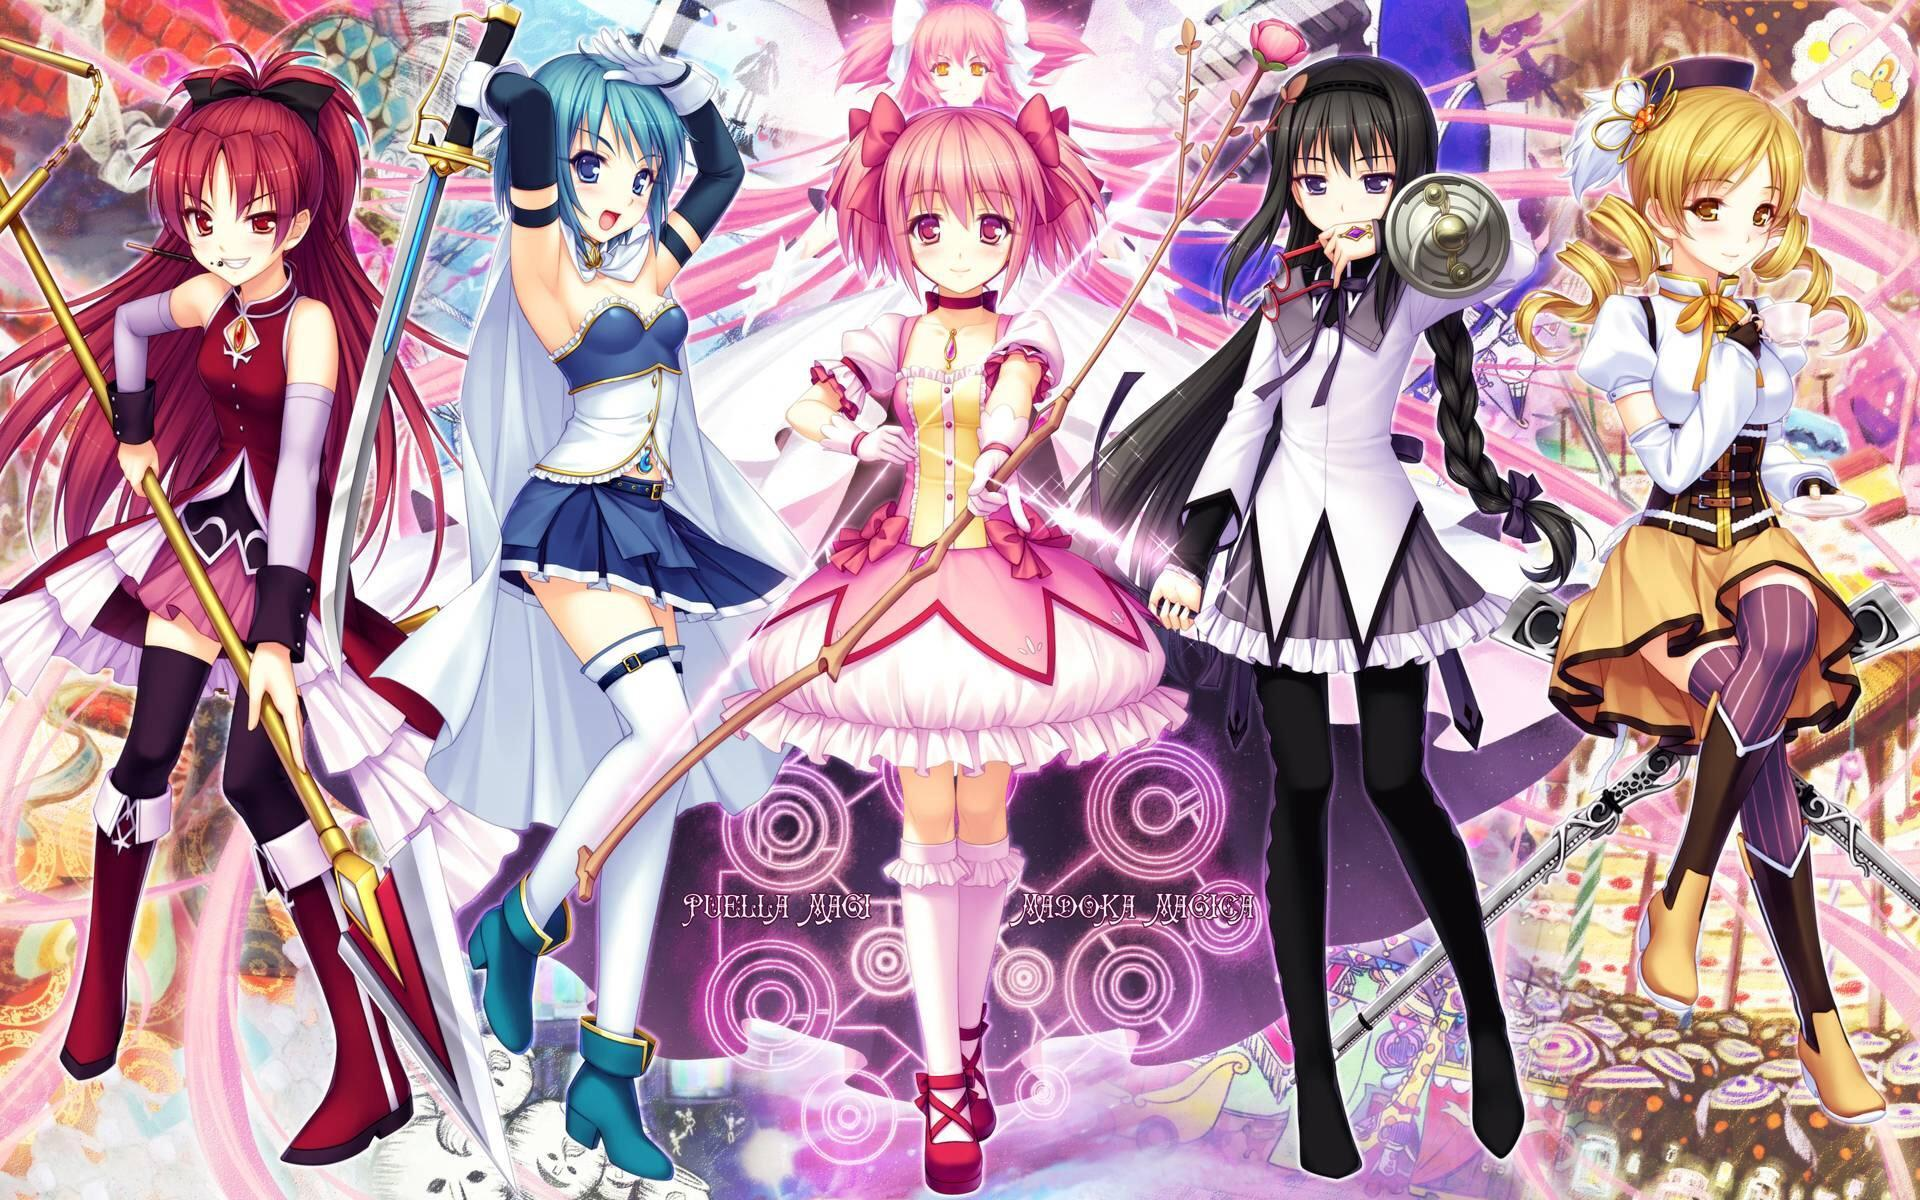 Do you like Puella Magi Madoka Magica?